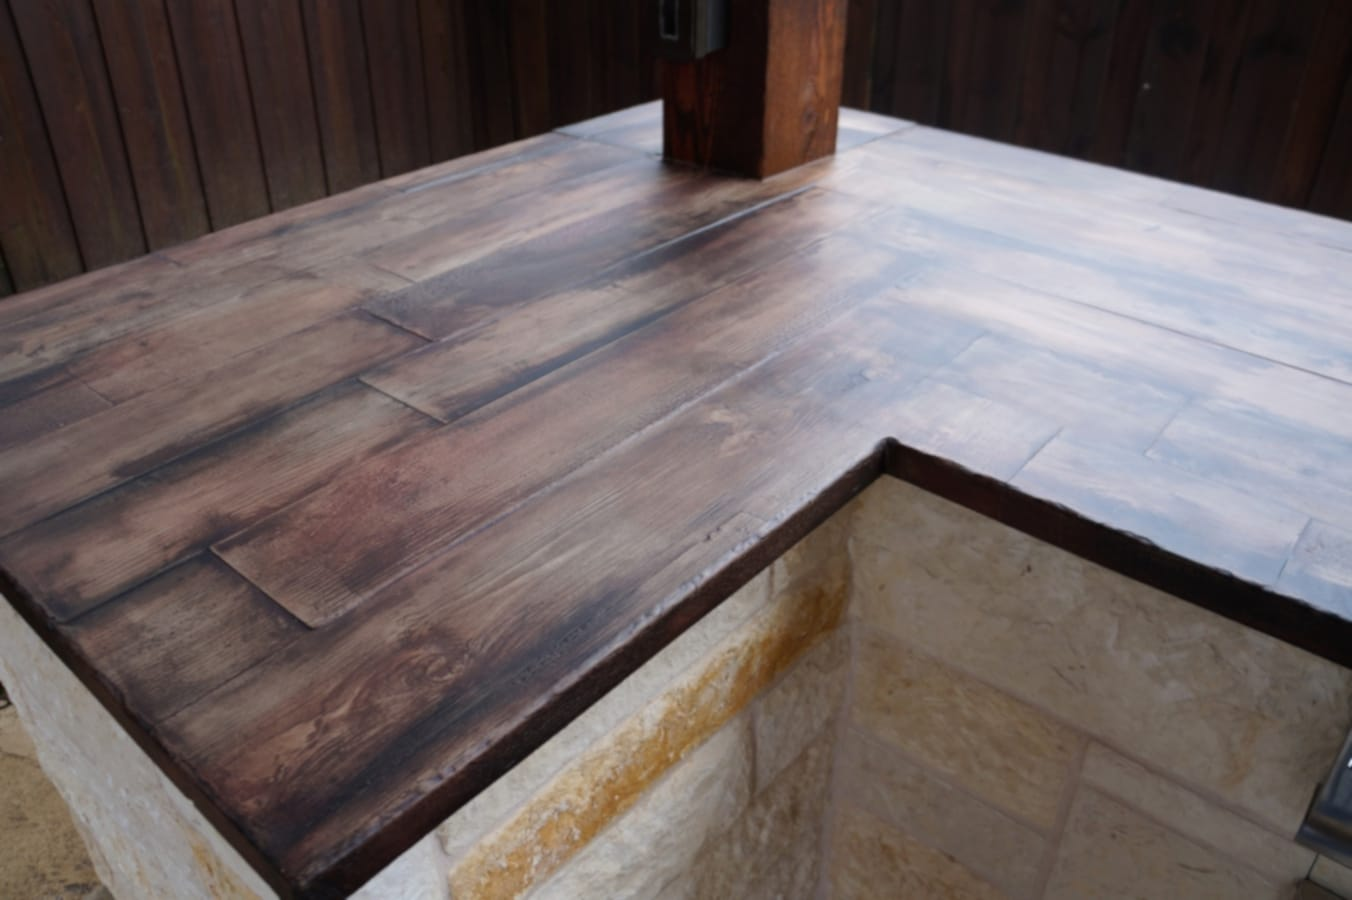 Custom Wood Look Concrete Countertops for an outdoor kitchen